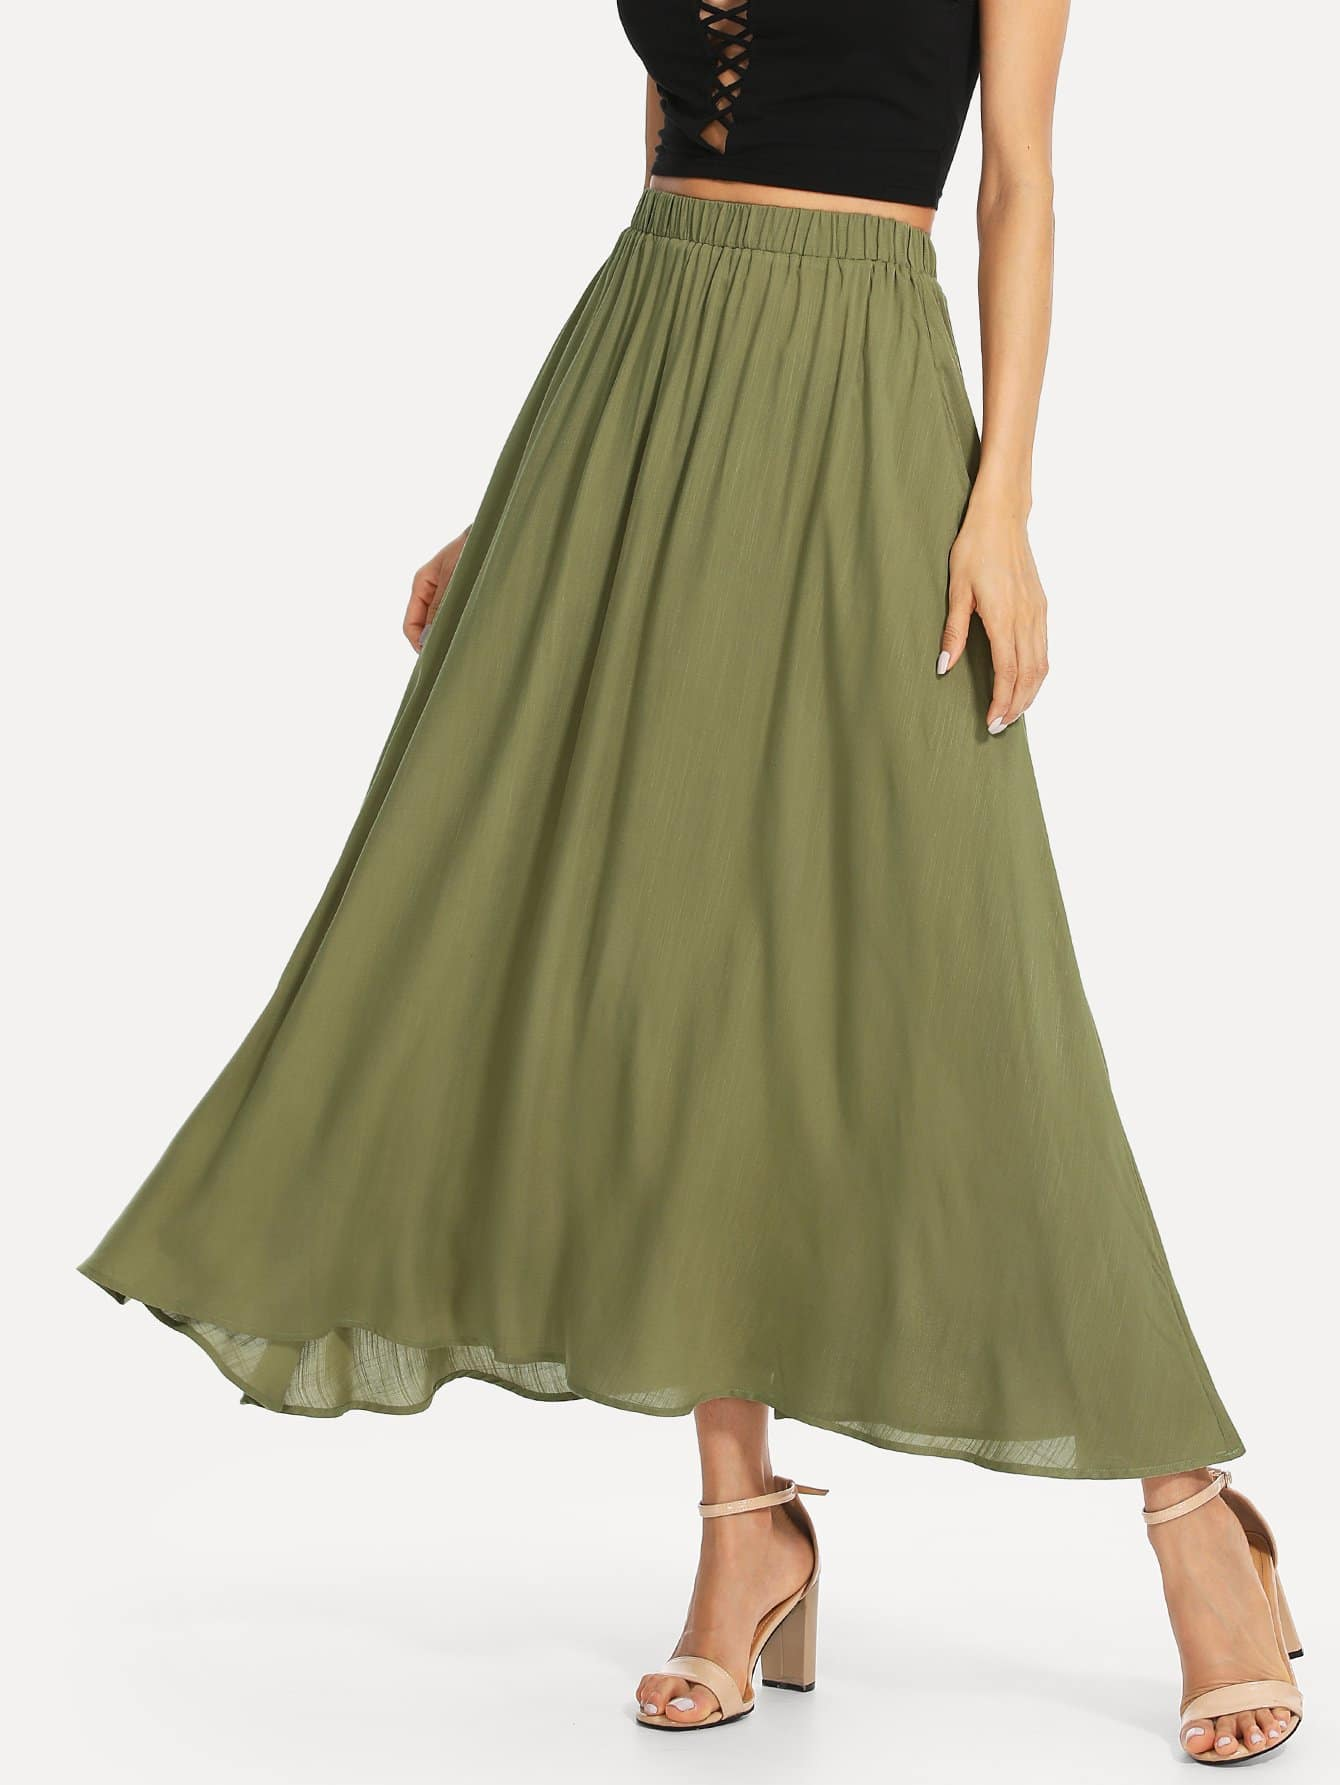 Elastic Waist Swing Skirt elasticized waist swing skirt